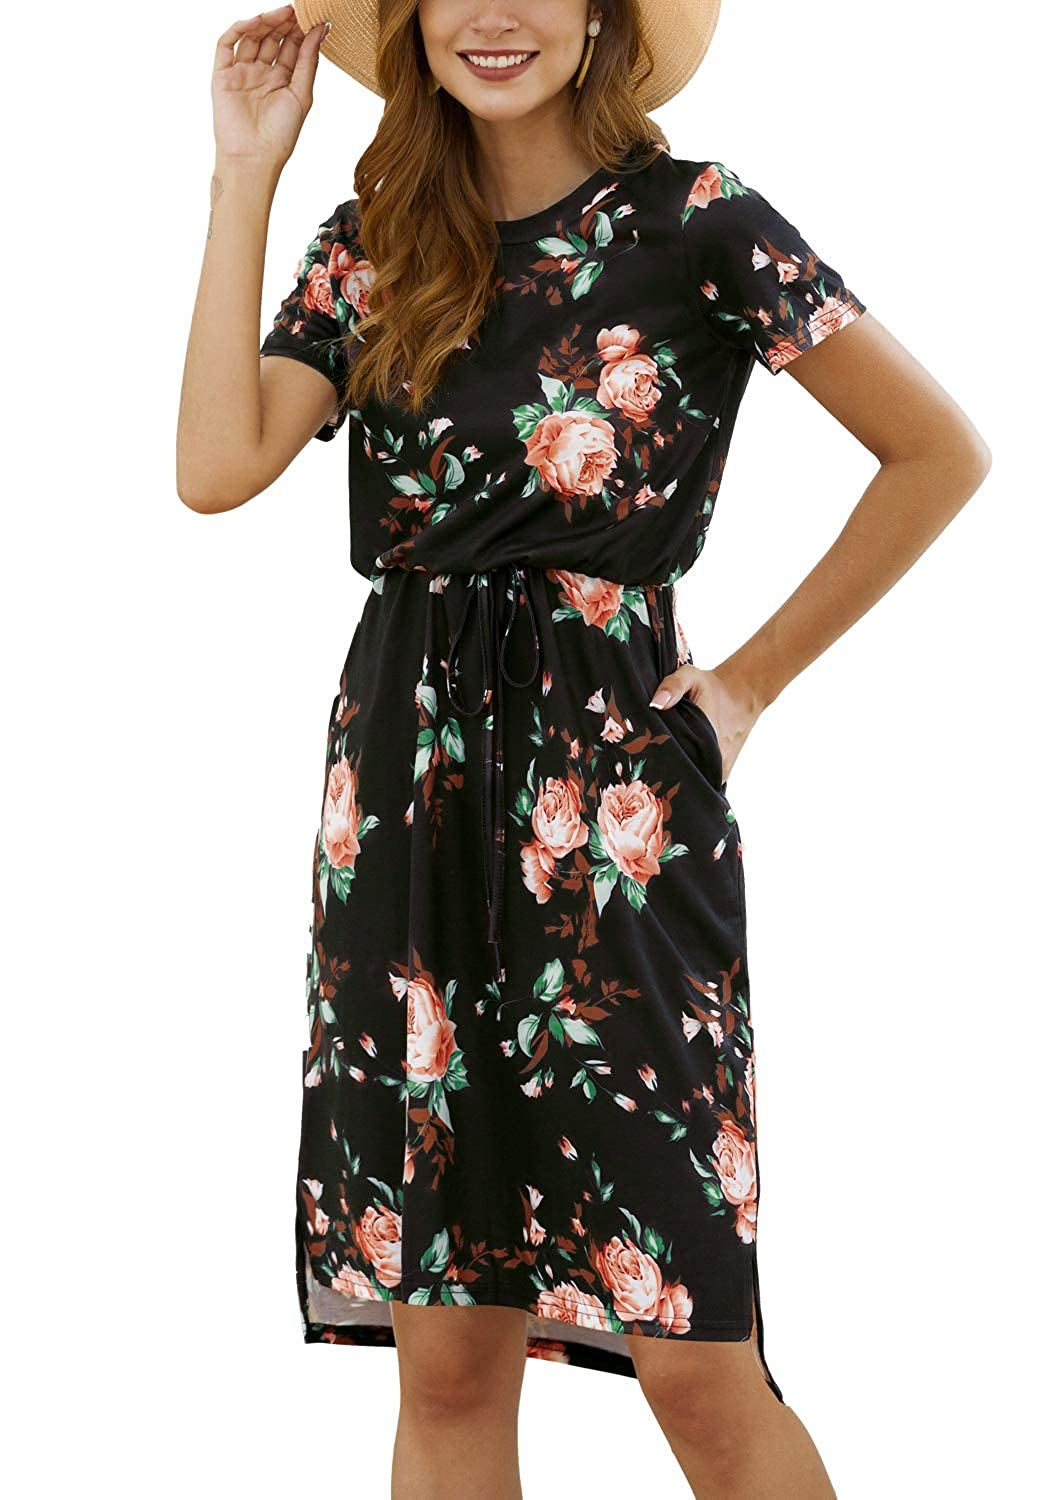 96ddc190439d Kesujin Women's Casual Floral Short Sleeve Dresses Midi Dress with Pockets  at Amazon Women's Clothing store: